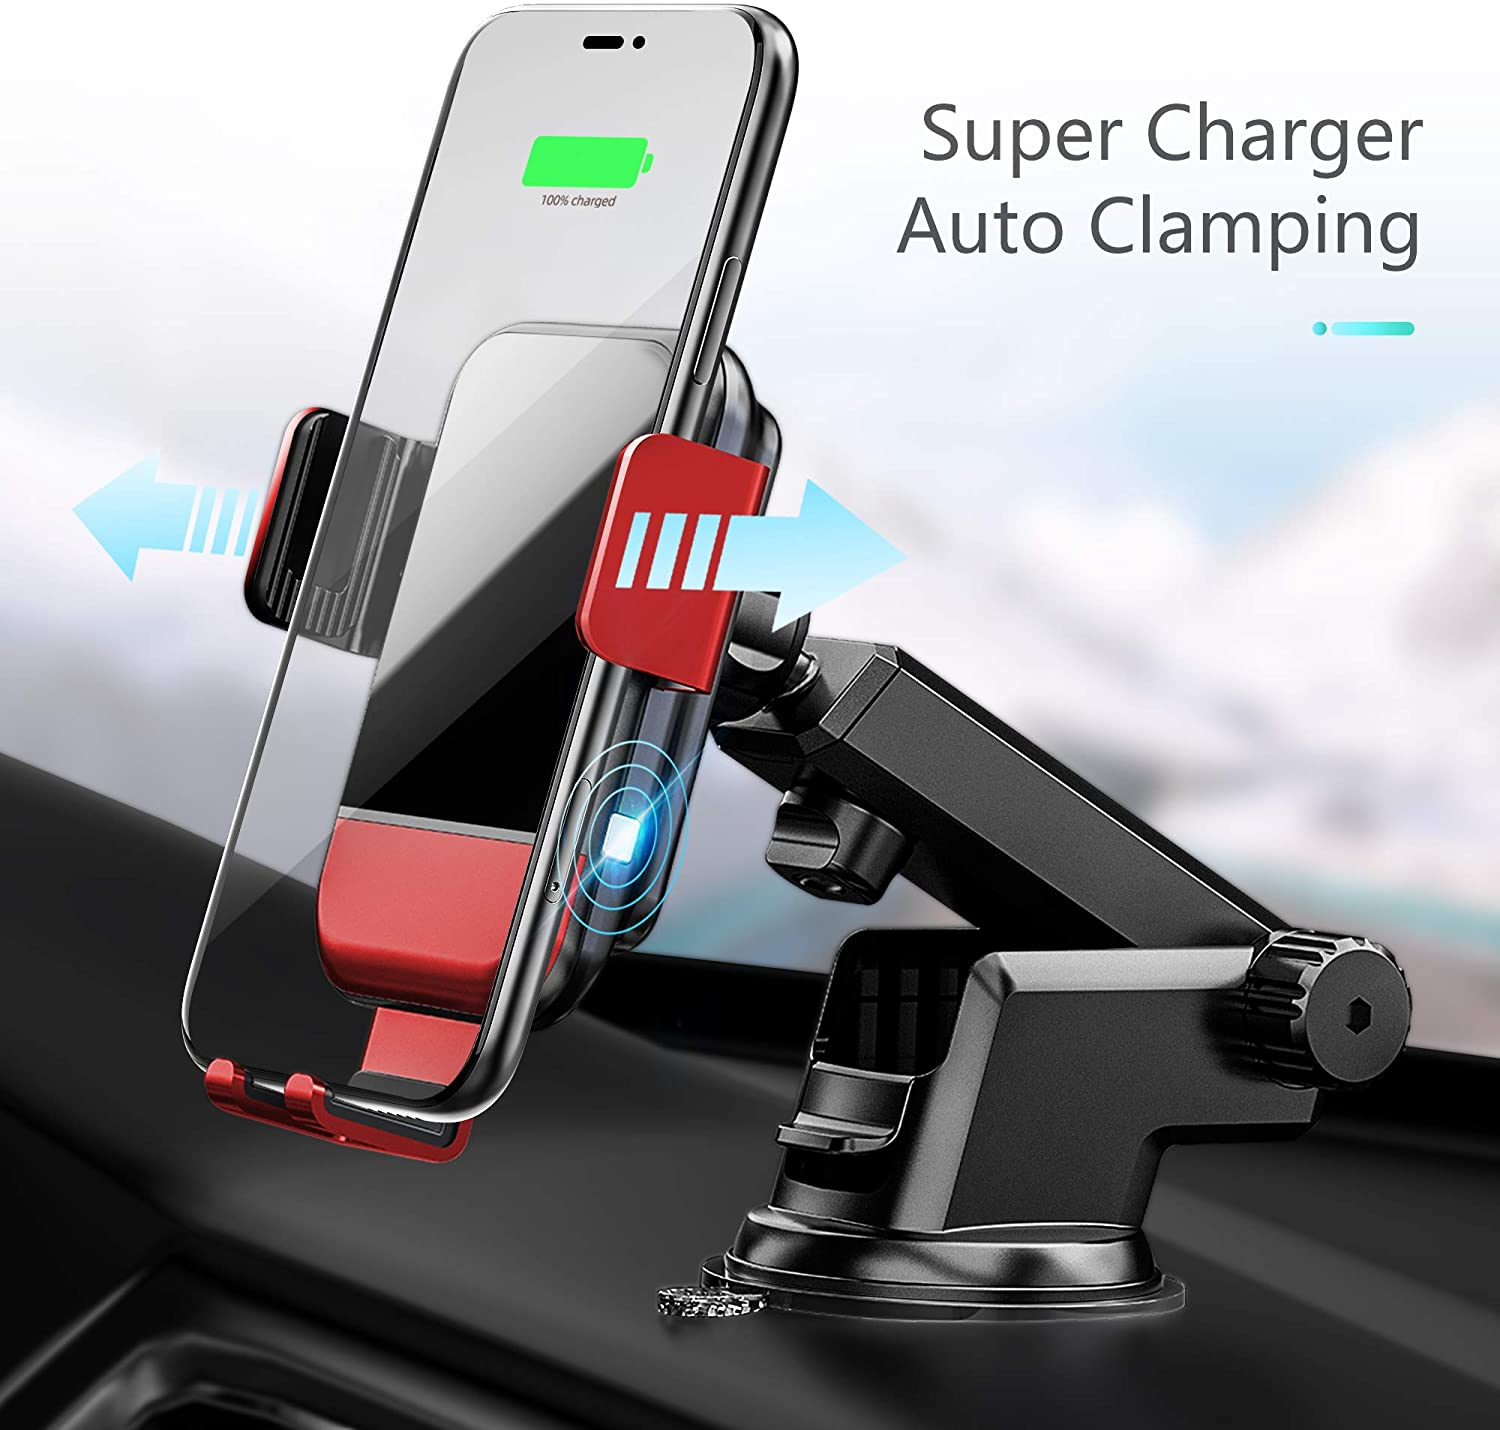 VVCAR Wireless Car Charger,15W Qi Fast Charging Car Mount Charger Auto-Clamping Air Vent Phone Holder Compatible with iPhone 11/11Pro/11Pro Max/Xs Max/XS/XR/X/8/8+, Samsung S10/S10+/S9/S9+/S8/S8+,Suc